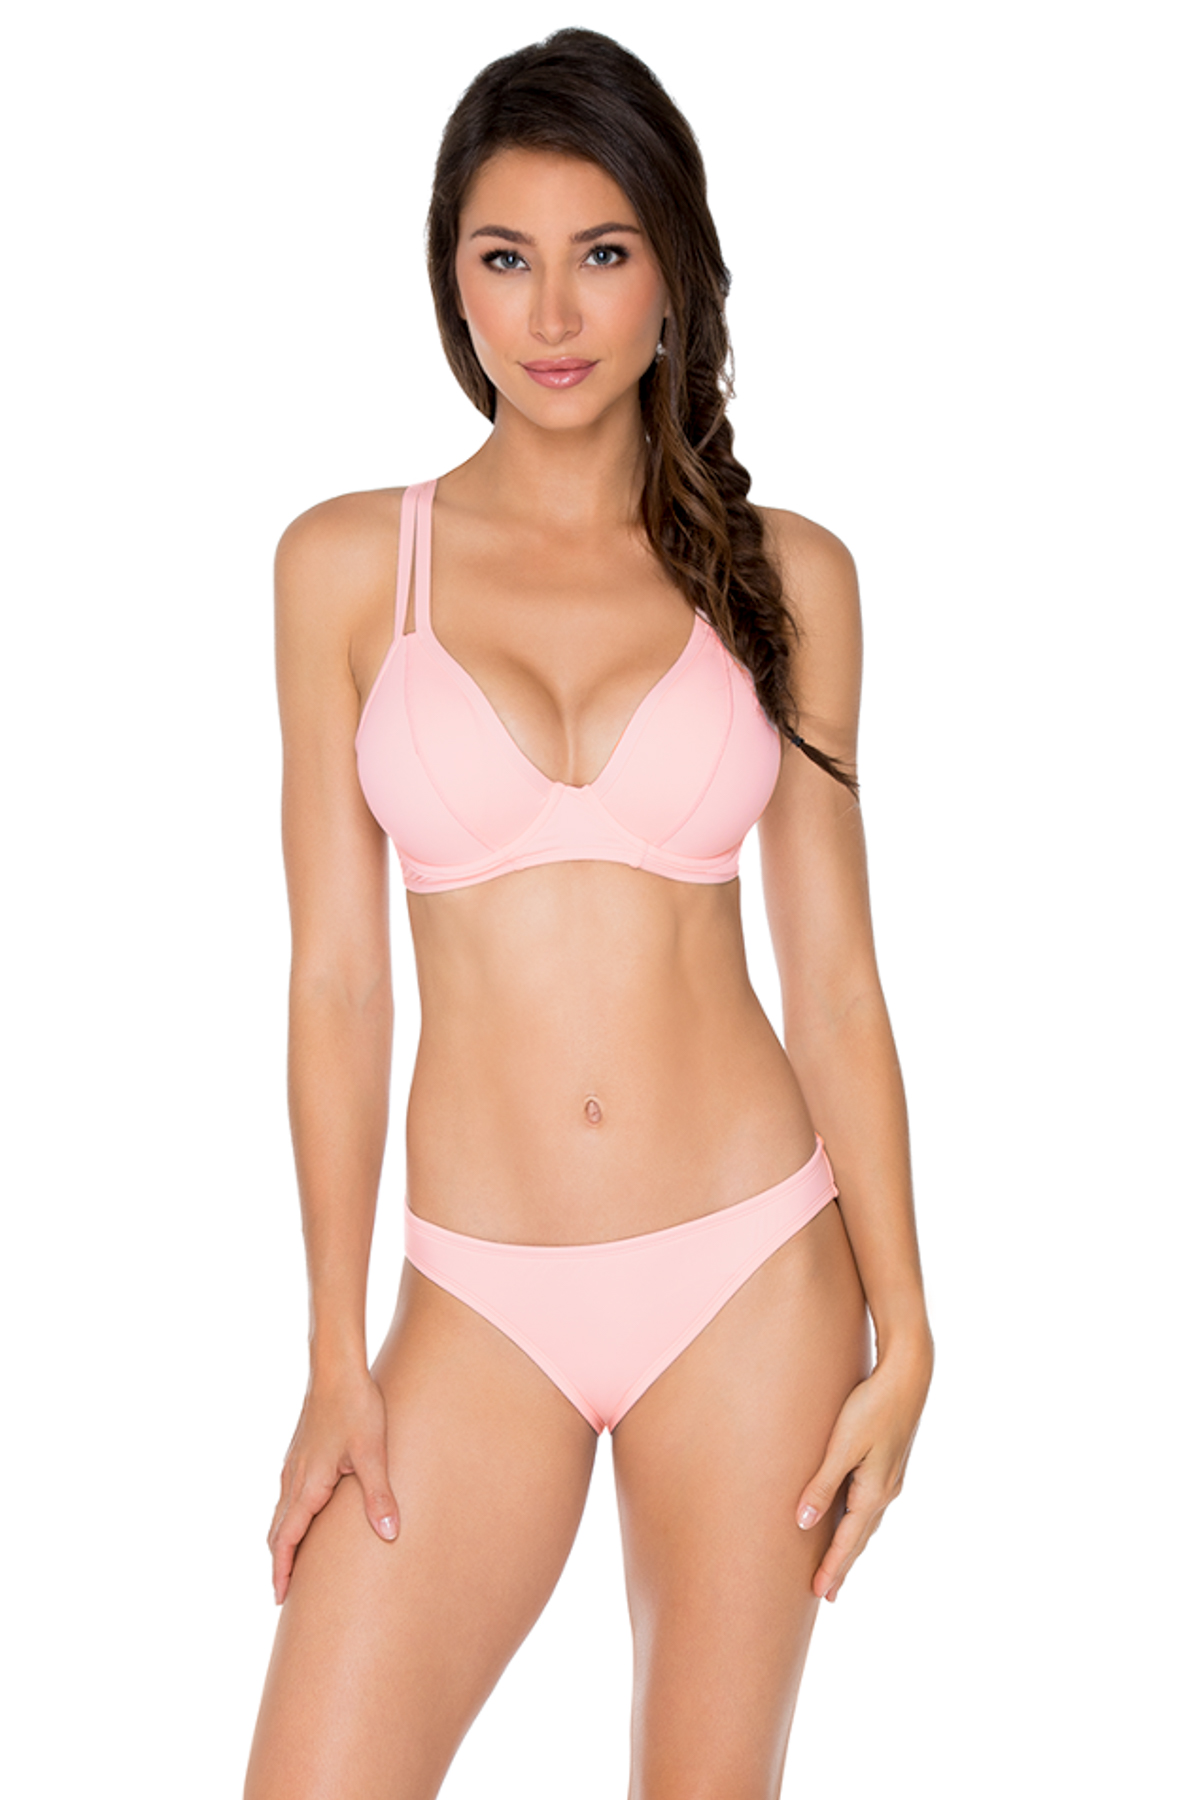 Avalon Underwire Over the Shoulder Bikini Top (D+ Cup) - Seashell